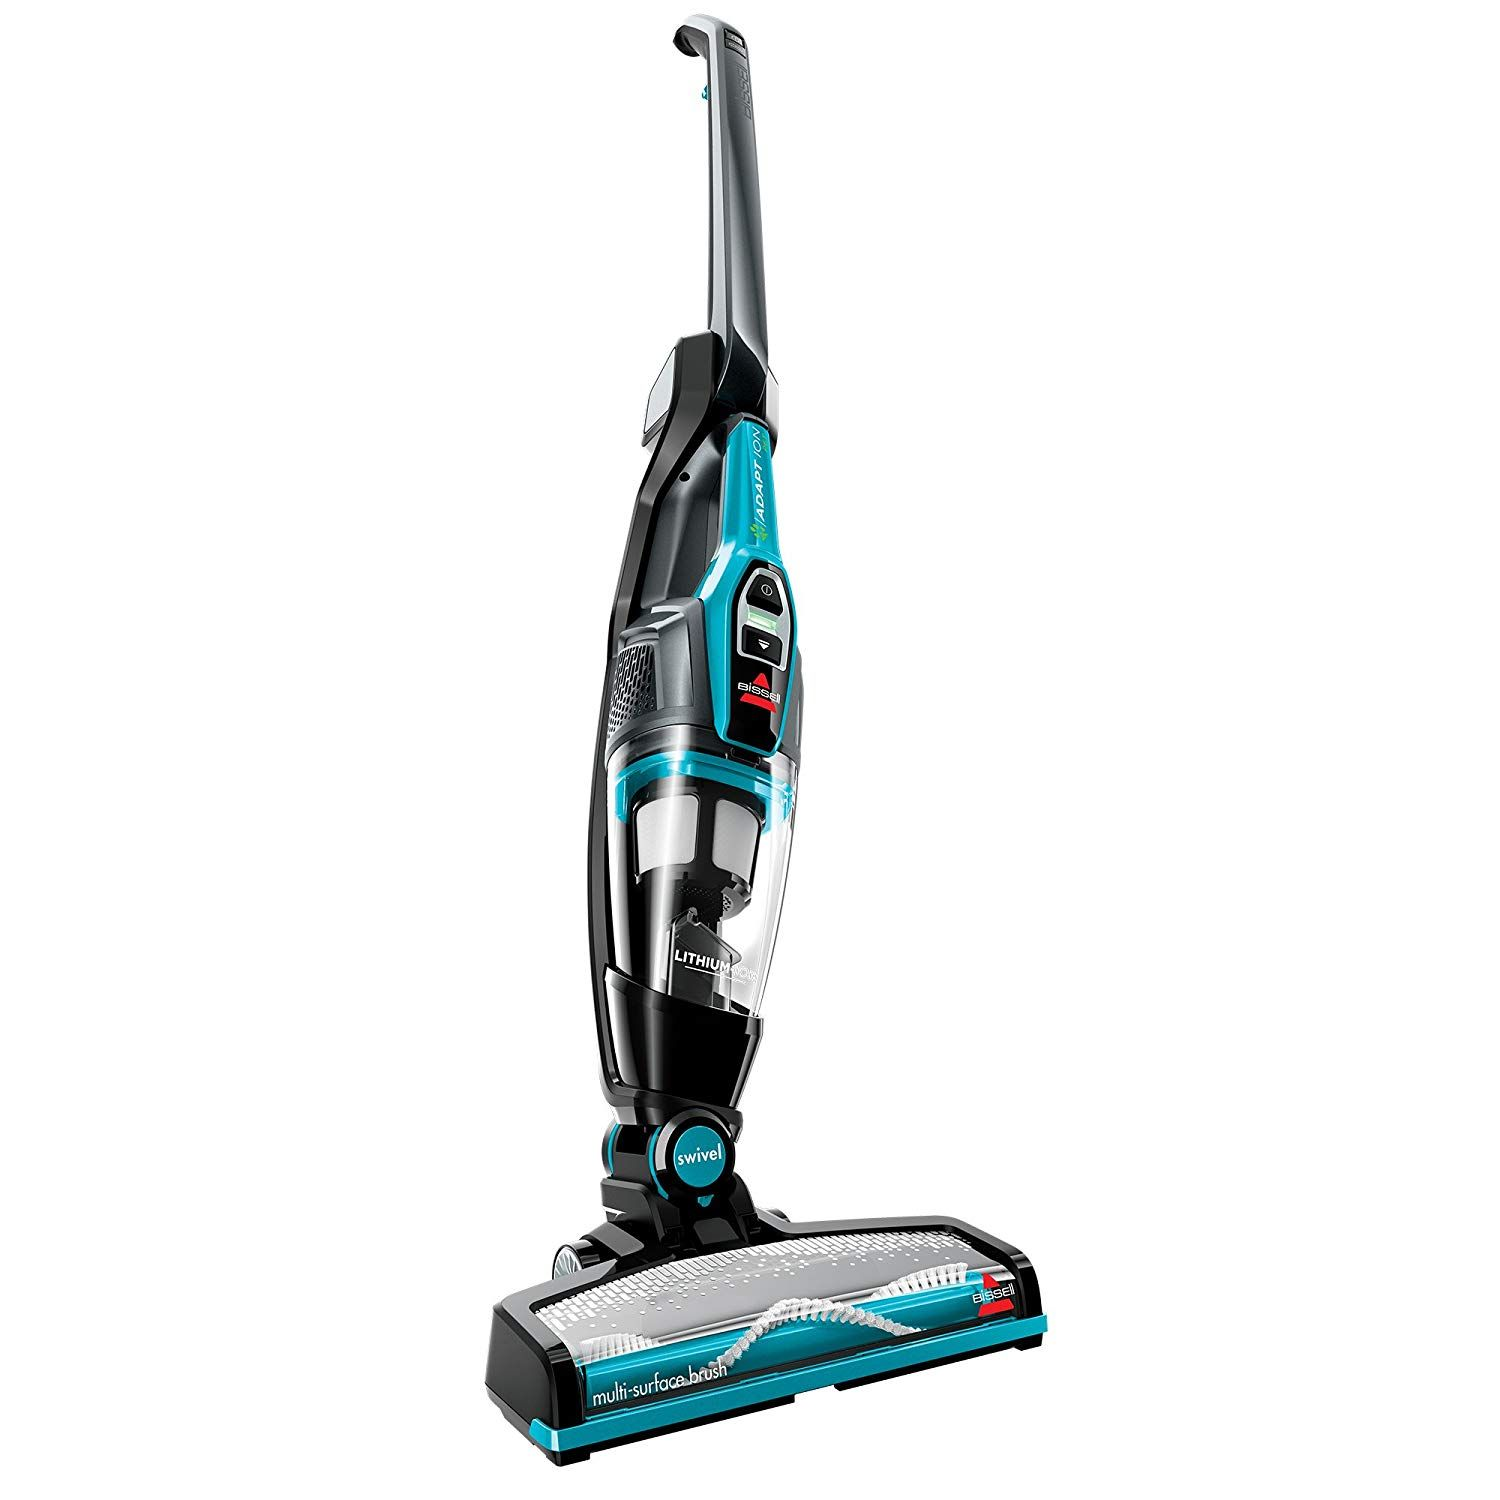 Bissell adapt ion pet 108v lithium ion 2 in 1 cordless